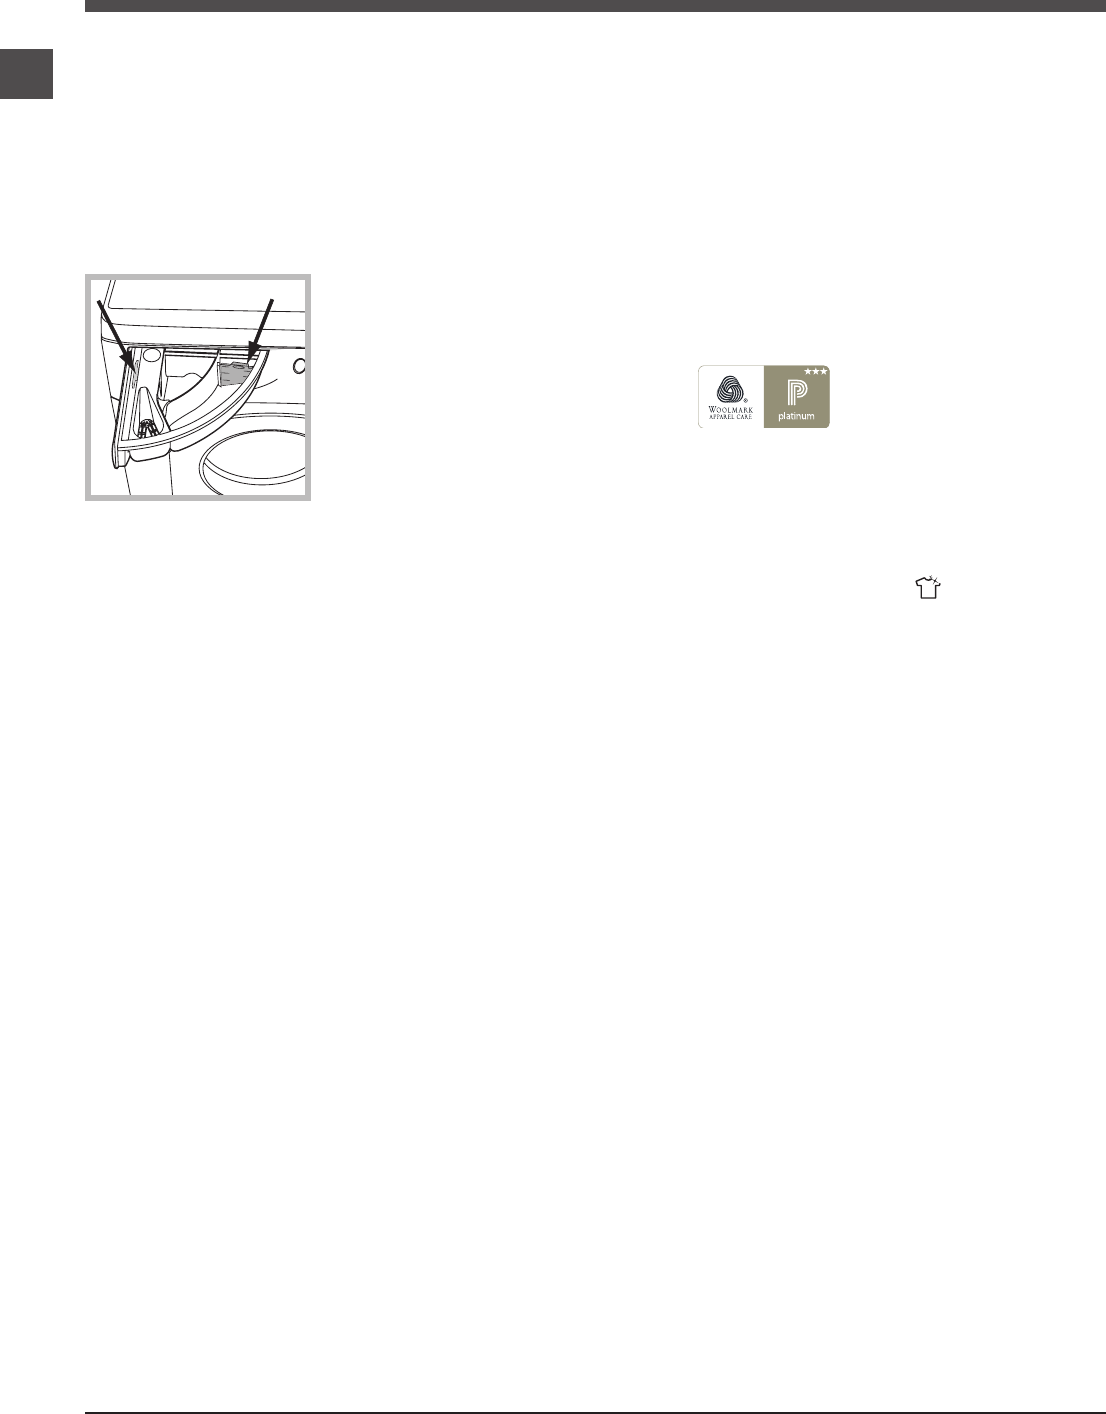 Hotpoint Wdpg 9640 Users Manual Wiring In Addition Un Imac Washer Diagram Moreover Dryer 12